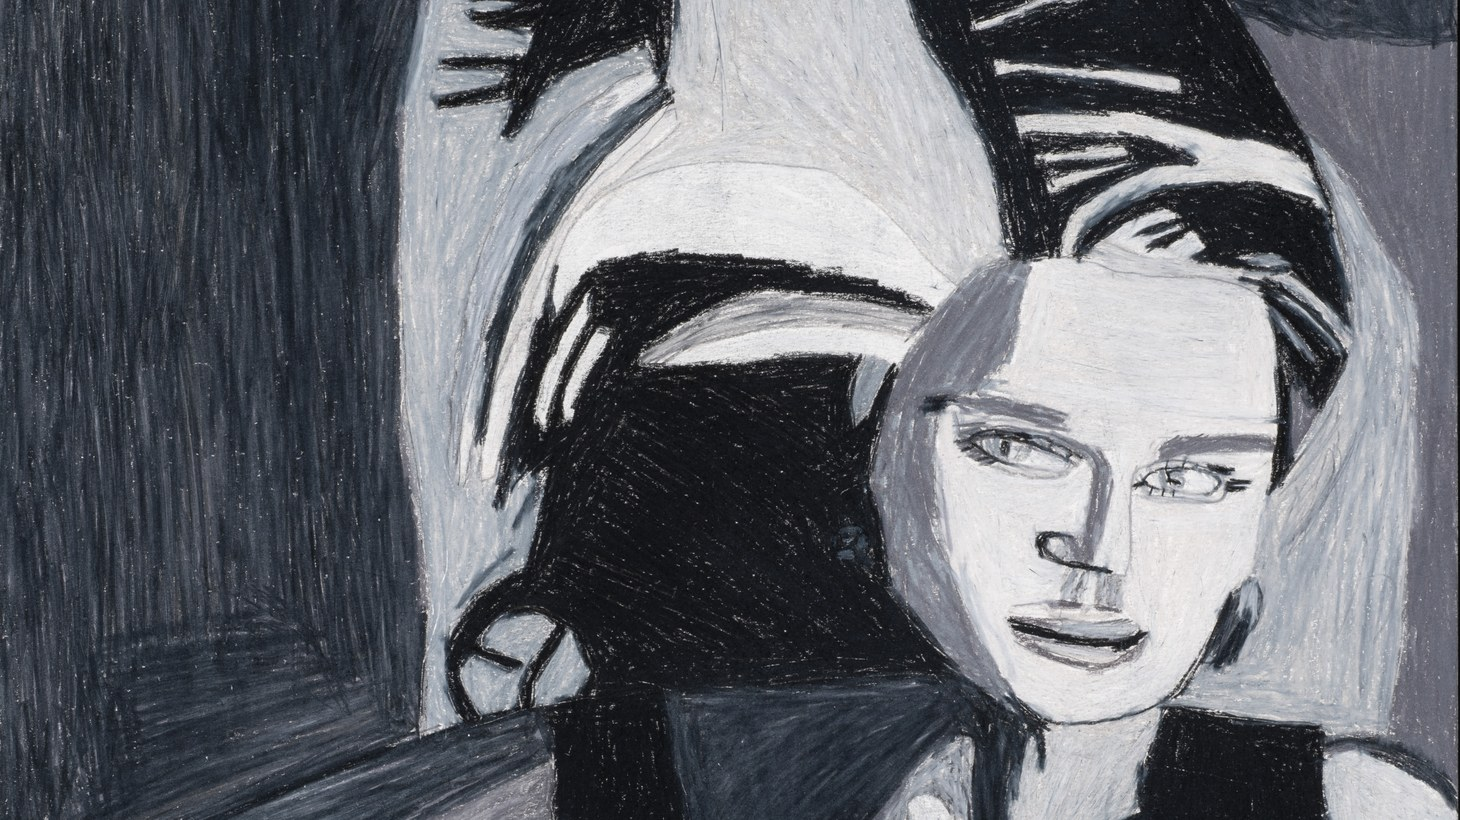 """Helen Rae, """"Untitled (December 5, 2019)."""" Graphite and color pencil on paper, 2019, 16.5 x 7."""""""